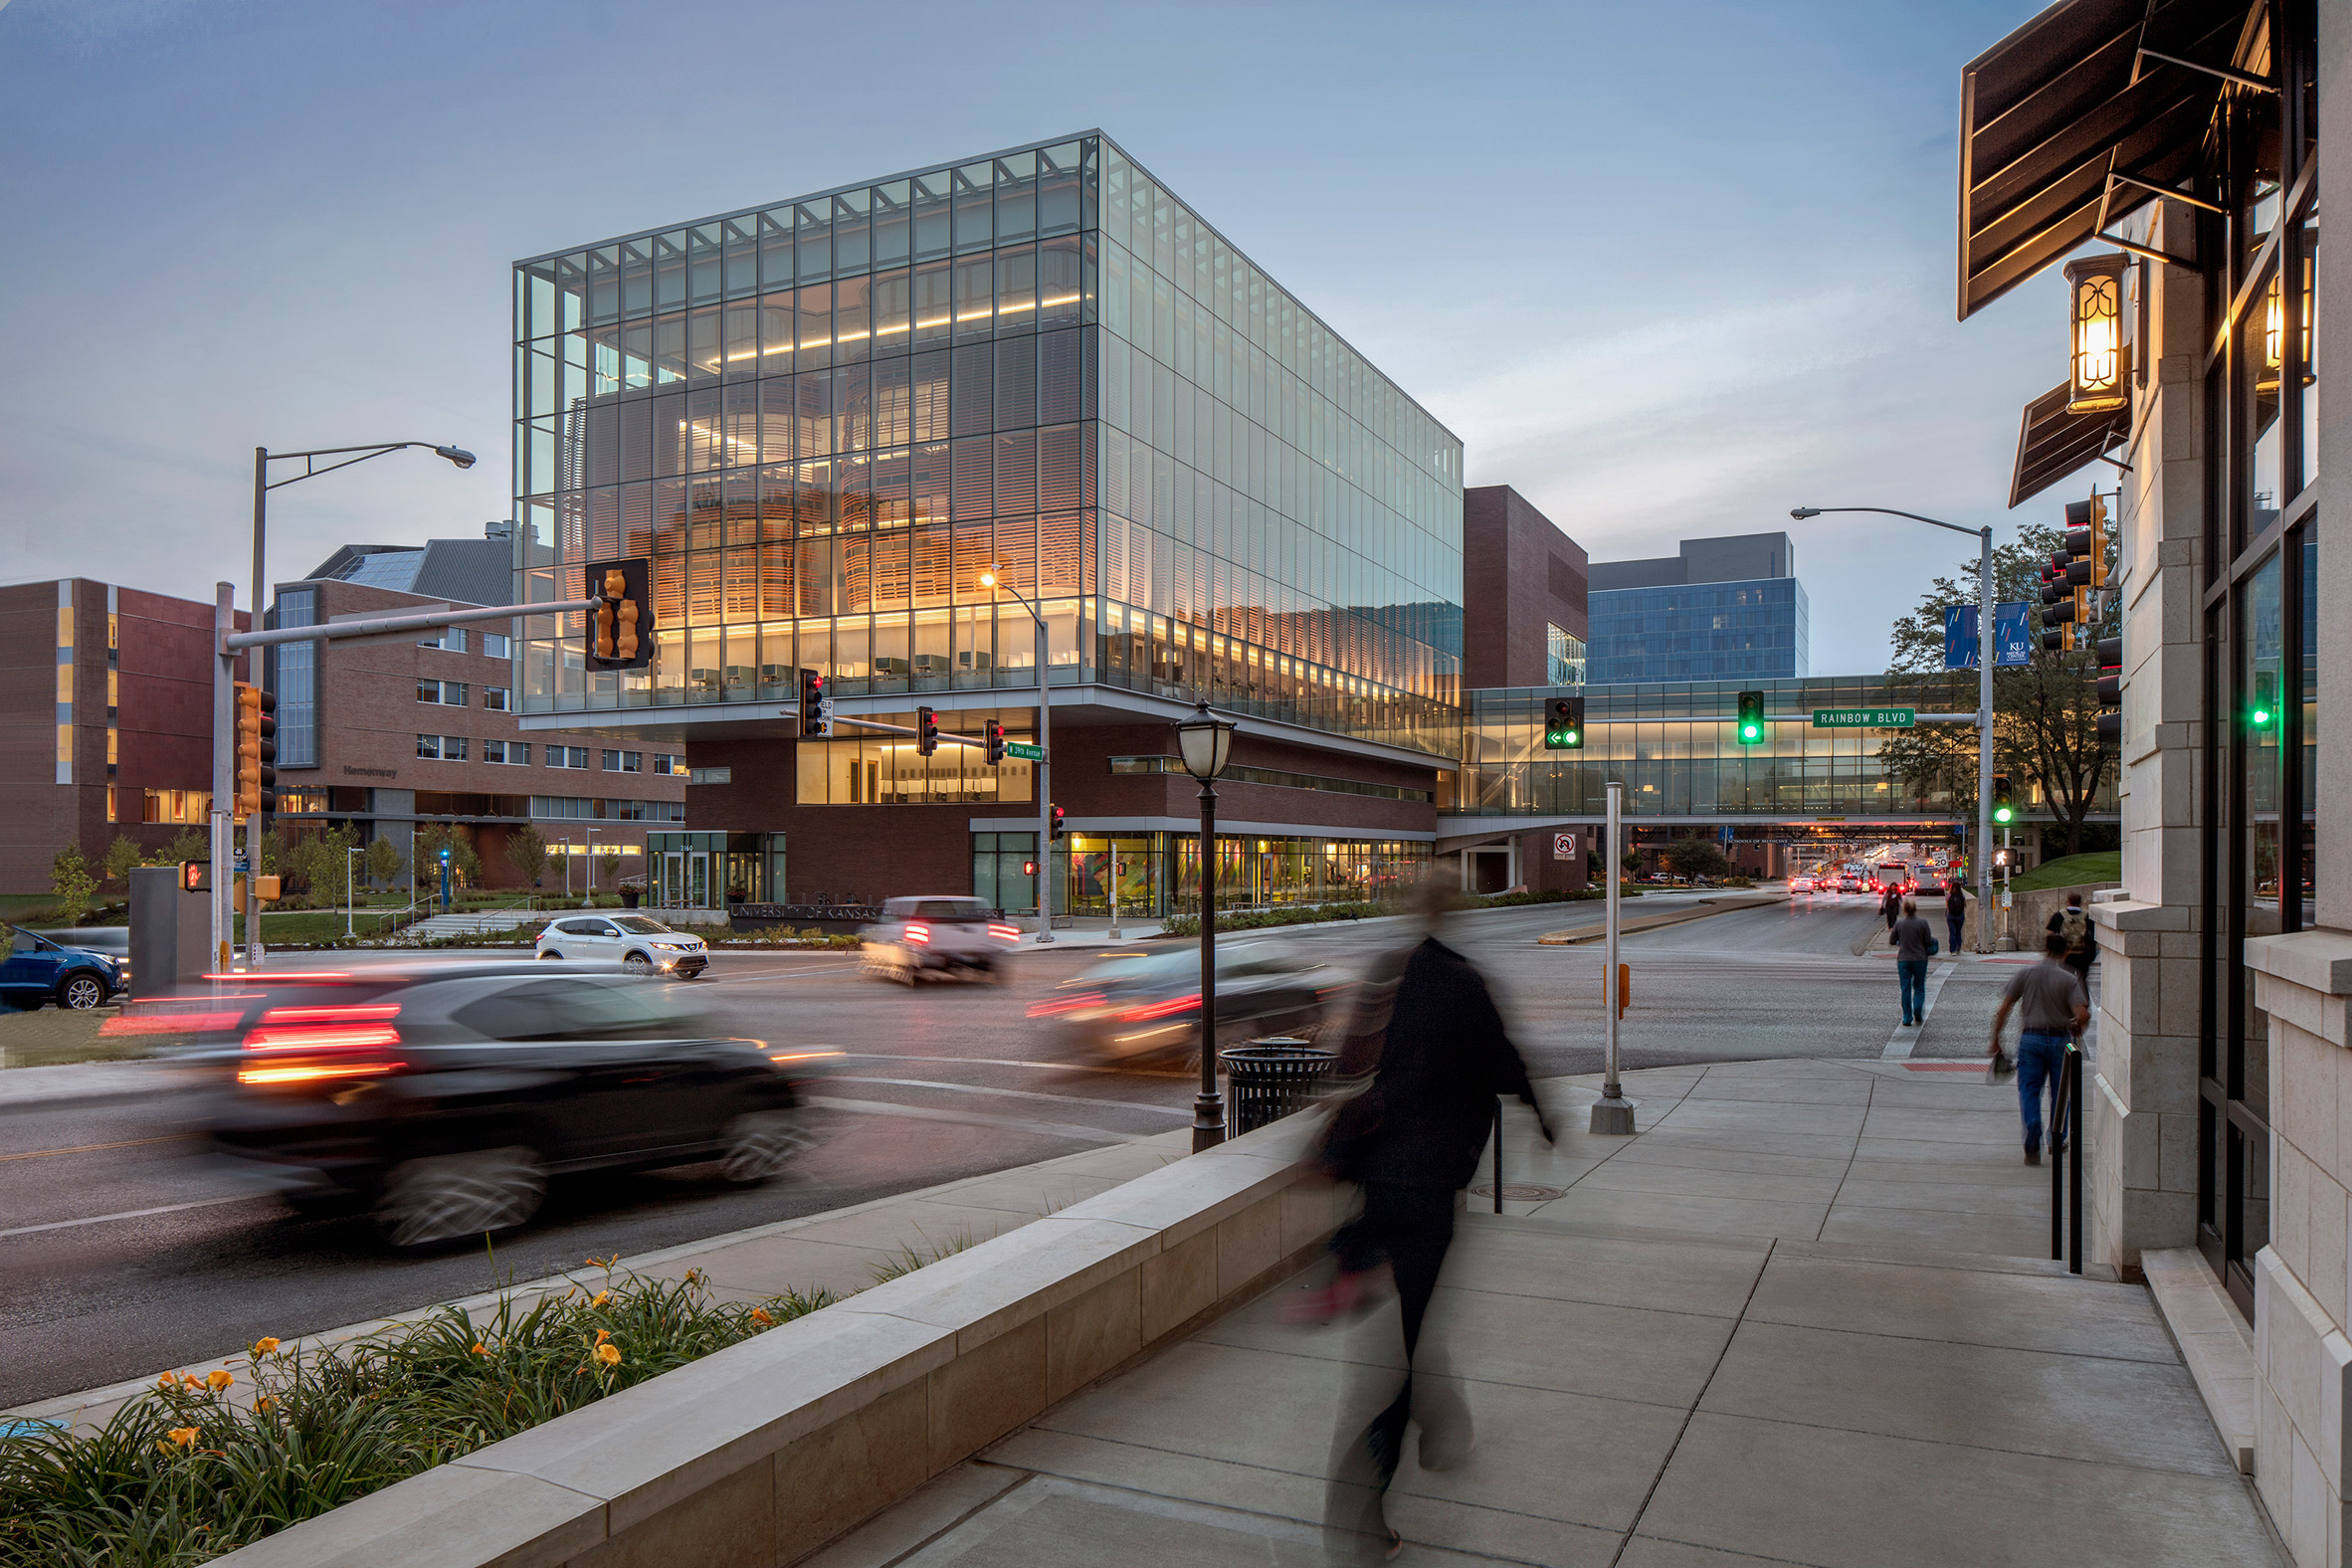 medical-center-university-of-kansas-co-architects-architecture-kansas-city-usa_dezeen_2364_col_1-852x568.jpg